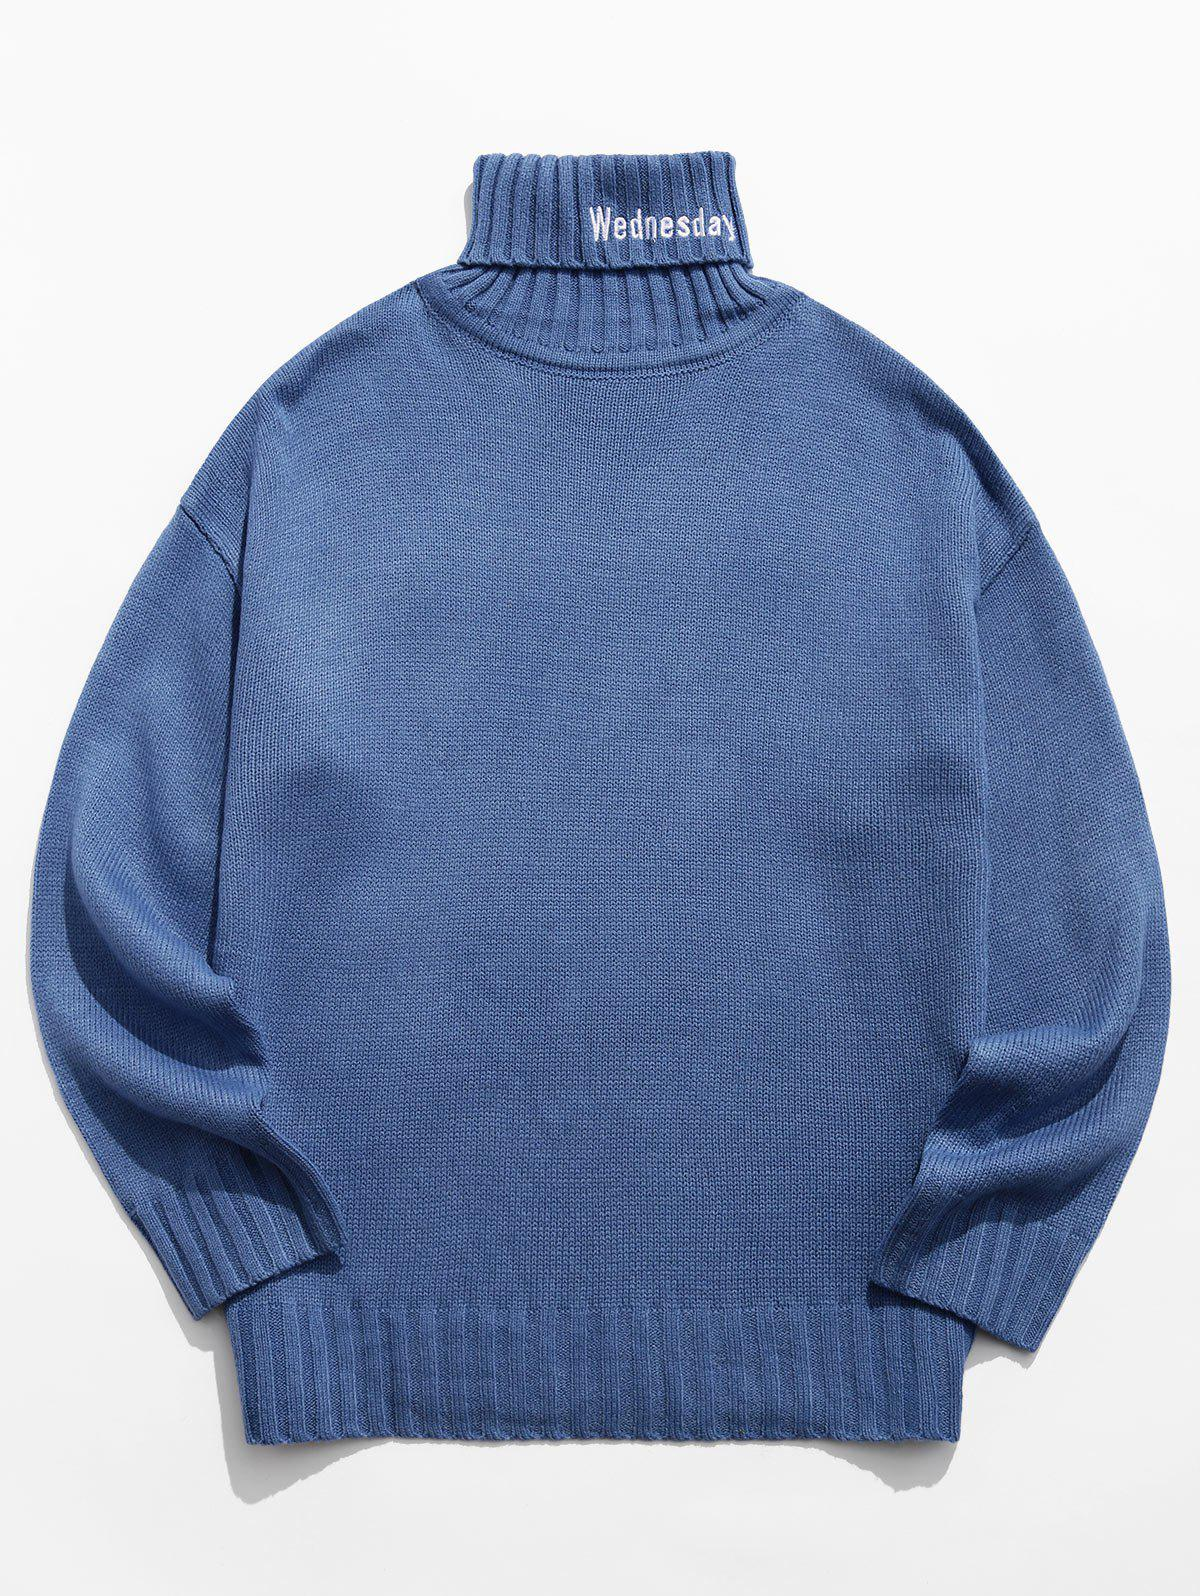 Turtleneck Letter Embroidery Long Sleeve Sweater - BLUE GRAY XL